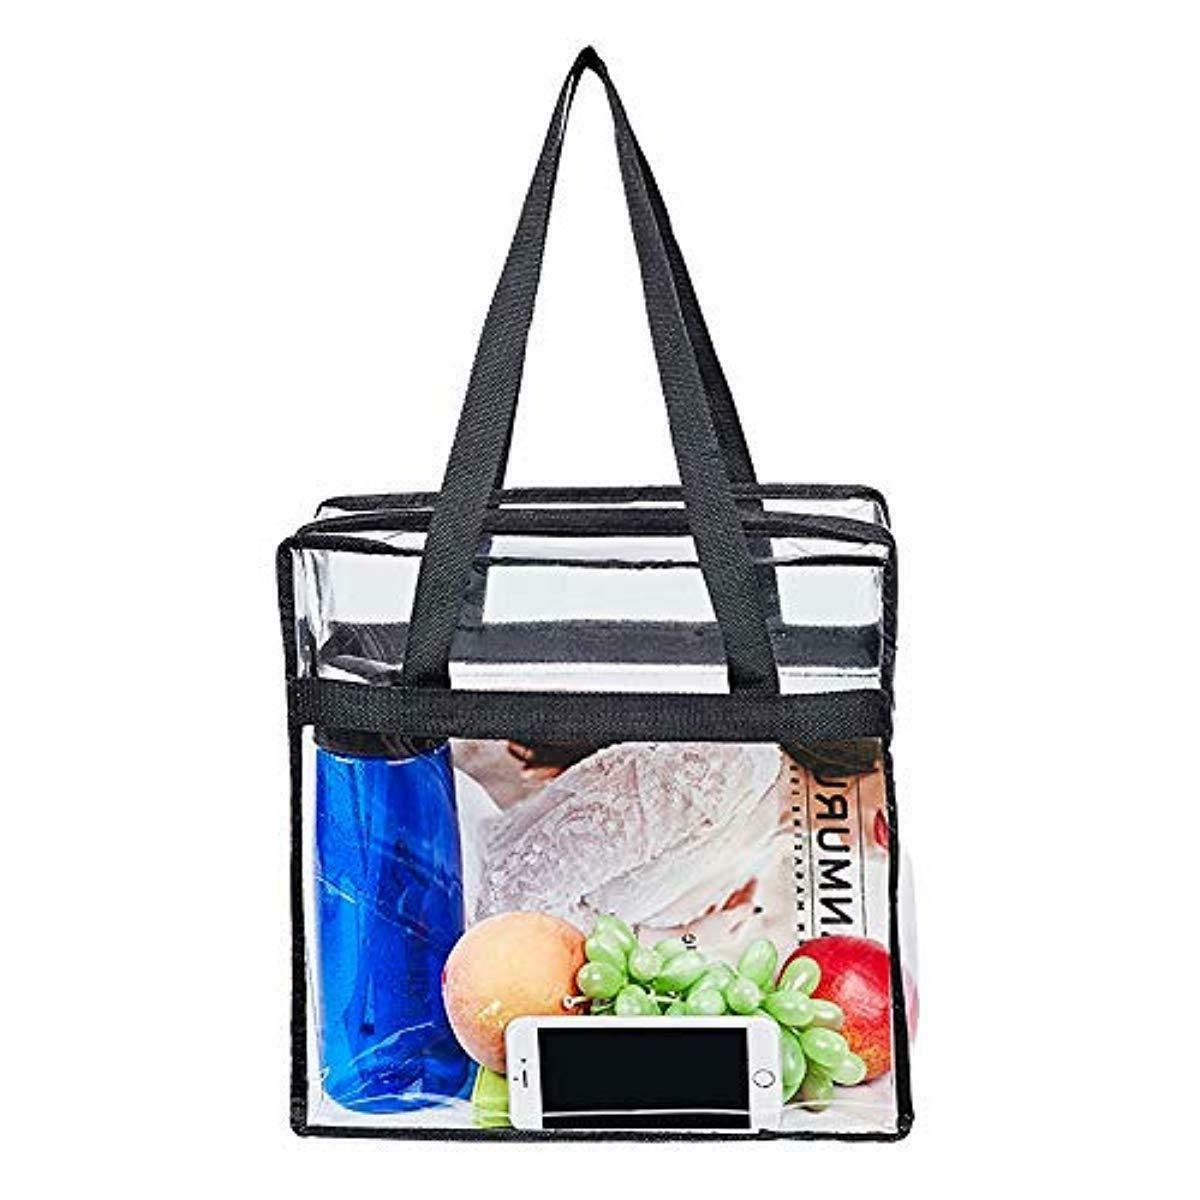 """Magicbags 12""""X12""""X6"""" Stadium Approved Clear Tote Bag, Sturdy"""